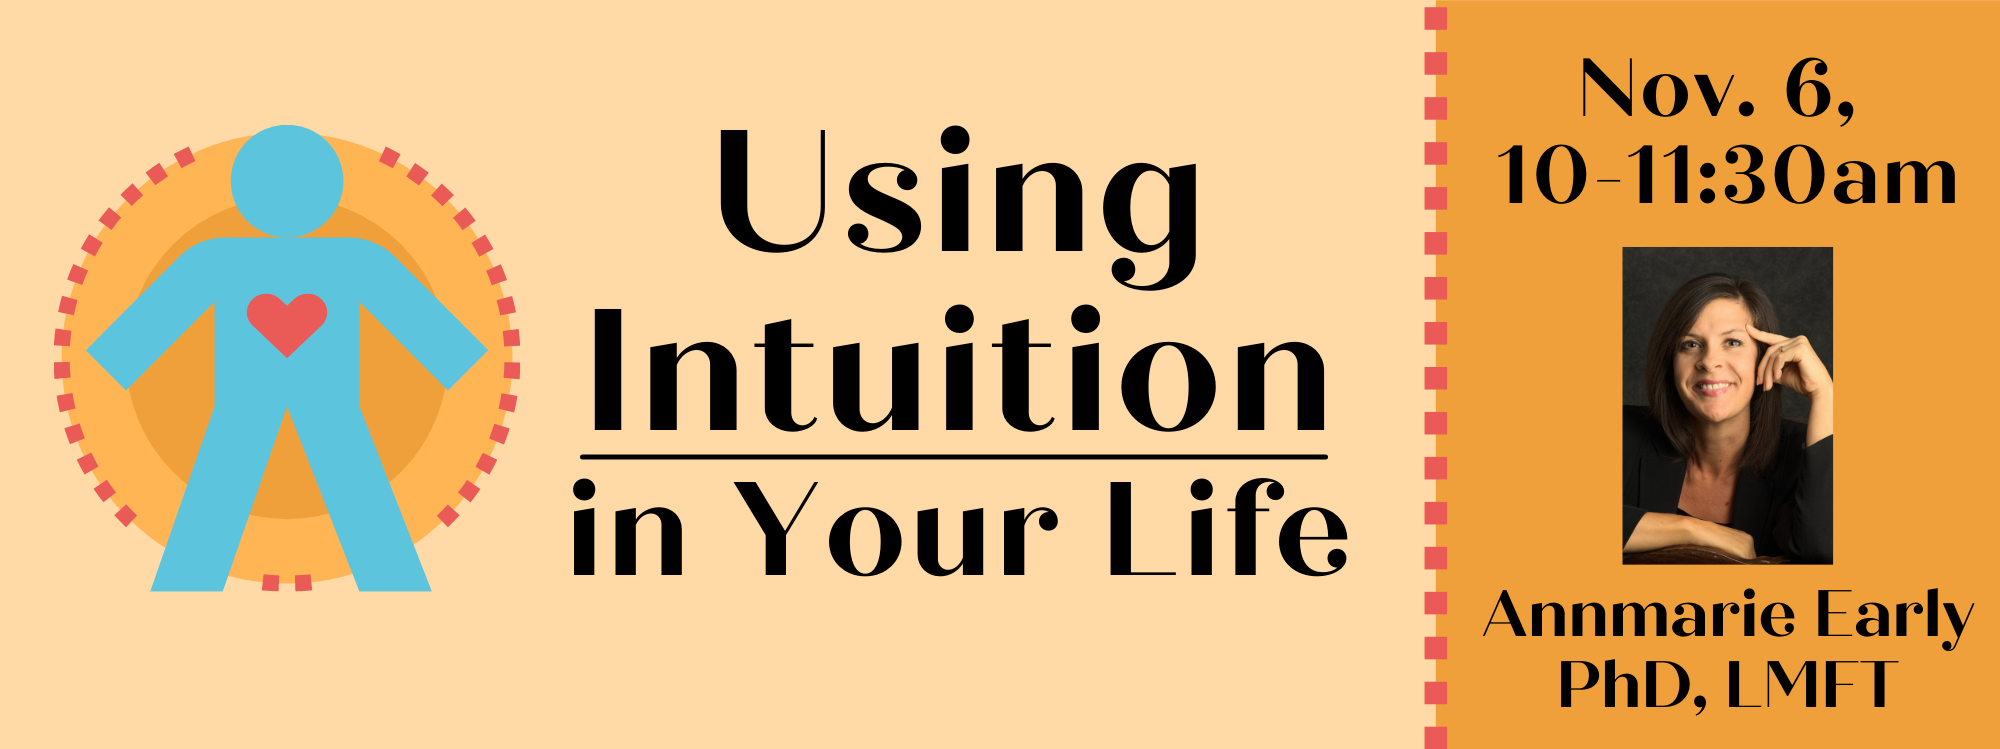 Using Intuition in Your Life